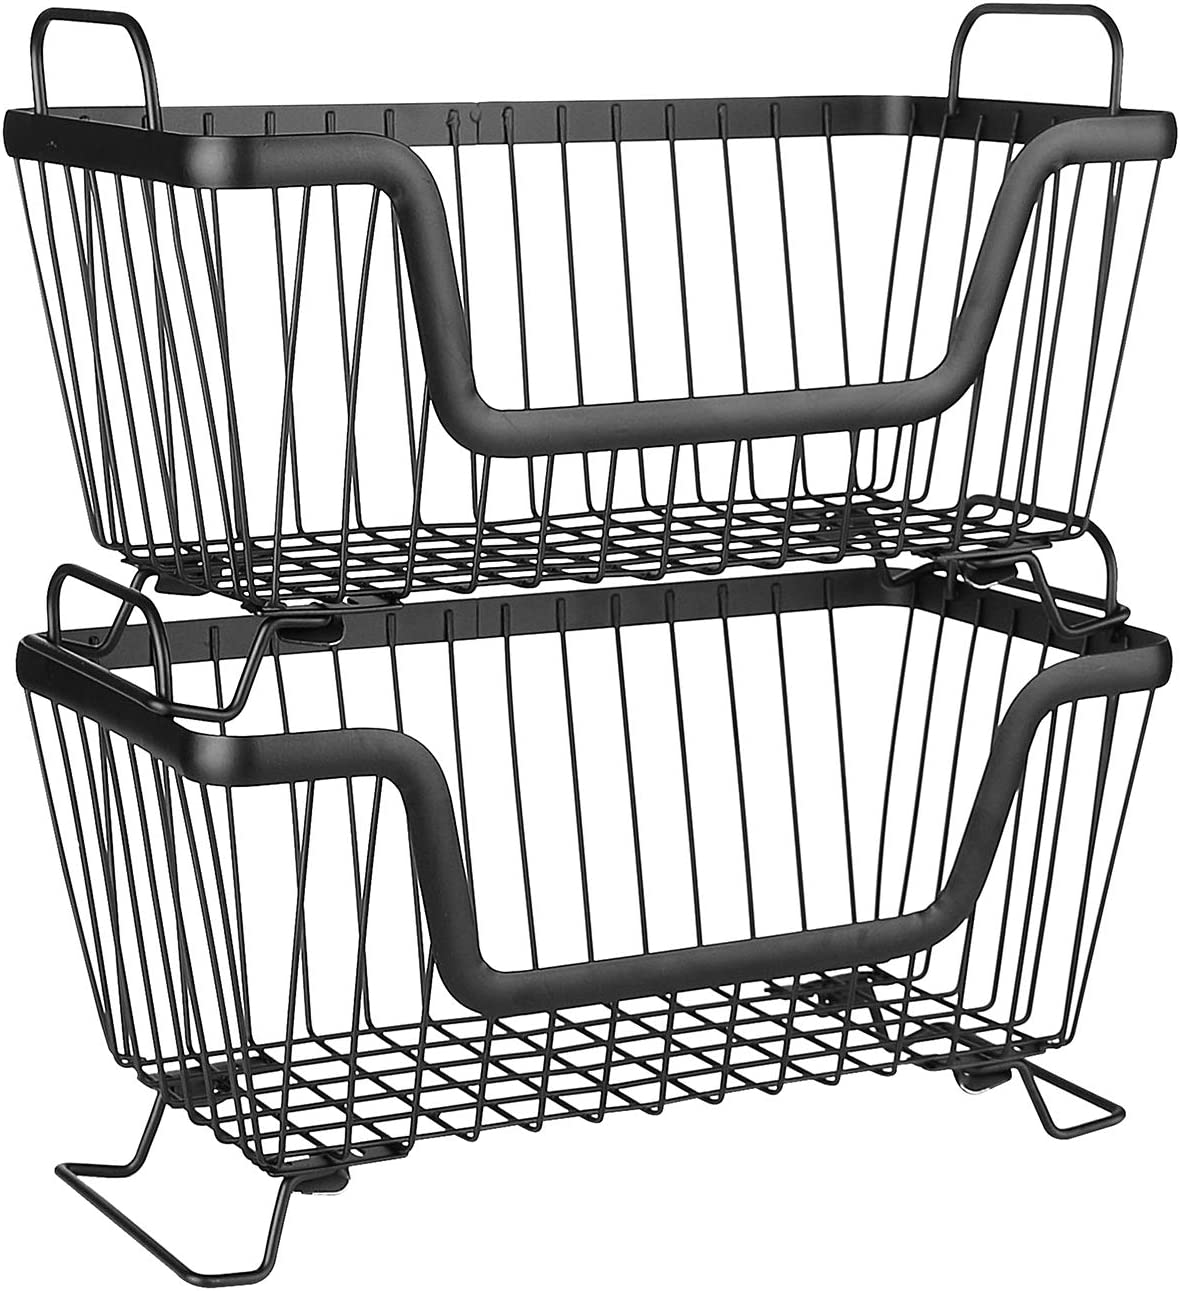 """LOTTS Stackable Metal Storage Organizer Bin Basket with Handles, Open Front for Kitchen Cabinets, Pantry, Closets, Bedrooms, Bathrooms (12.6×6.5×7.6"""")- 2 Pack"""